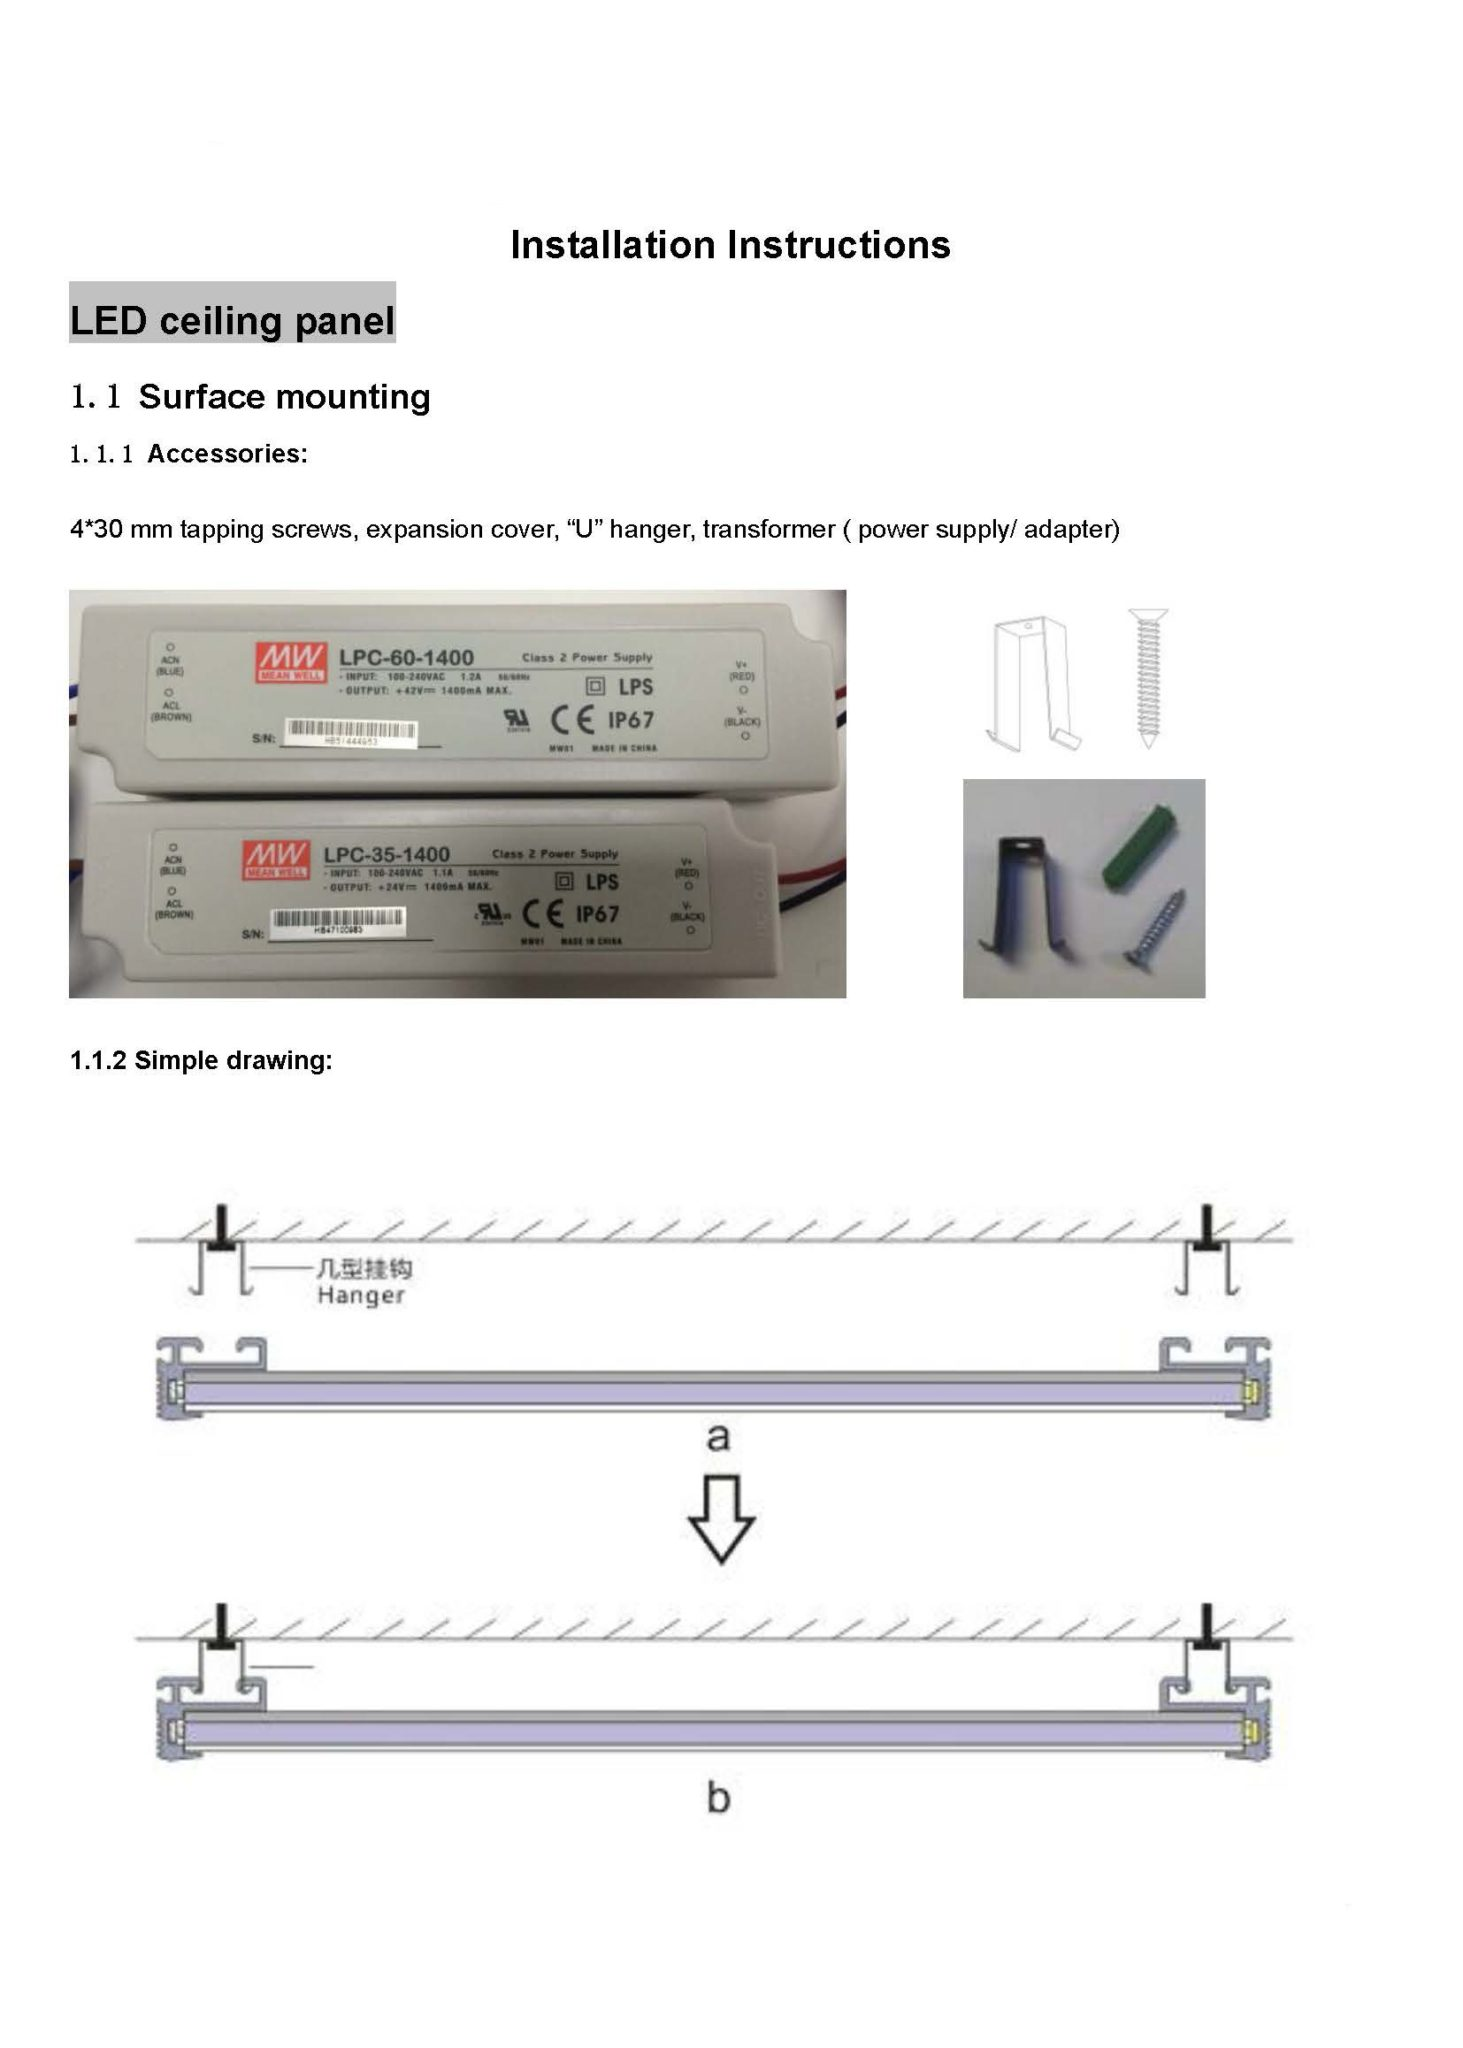 LED Sky Panel Installation Instructions